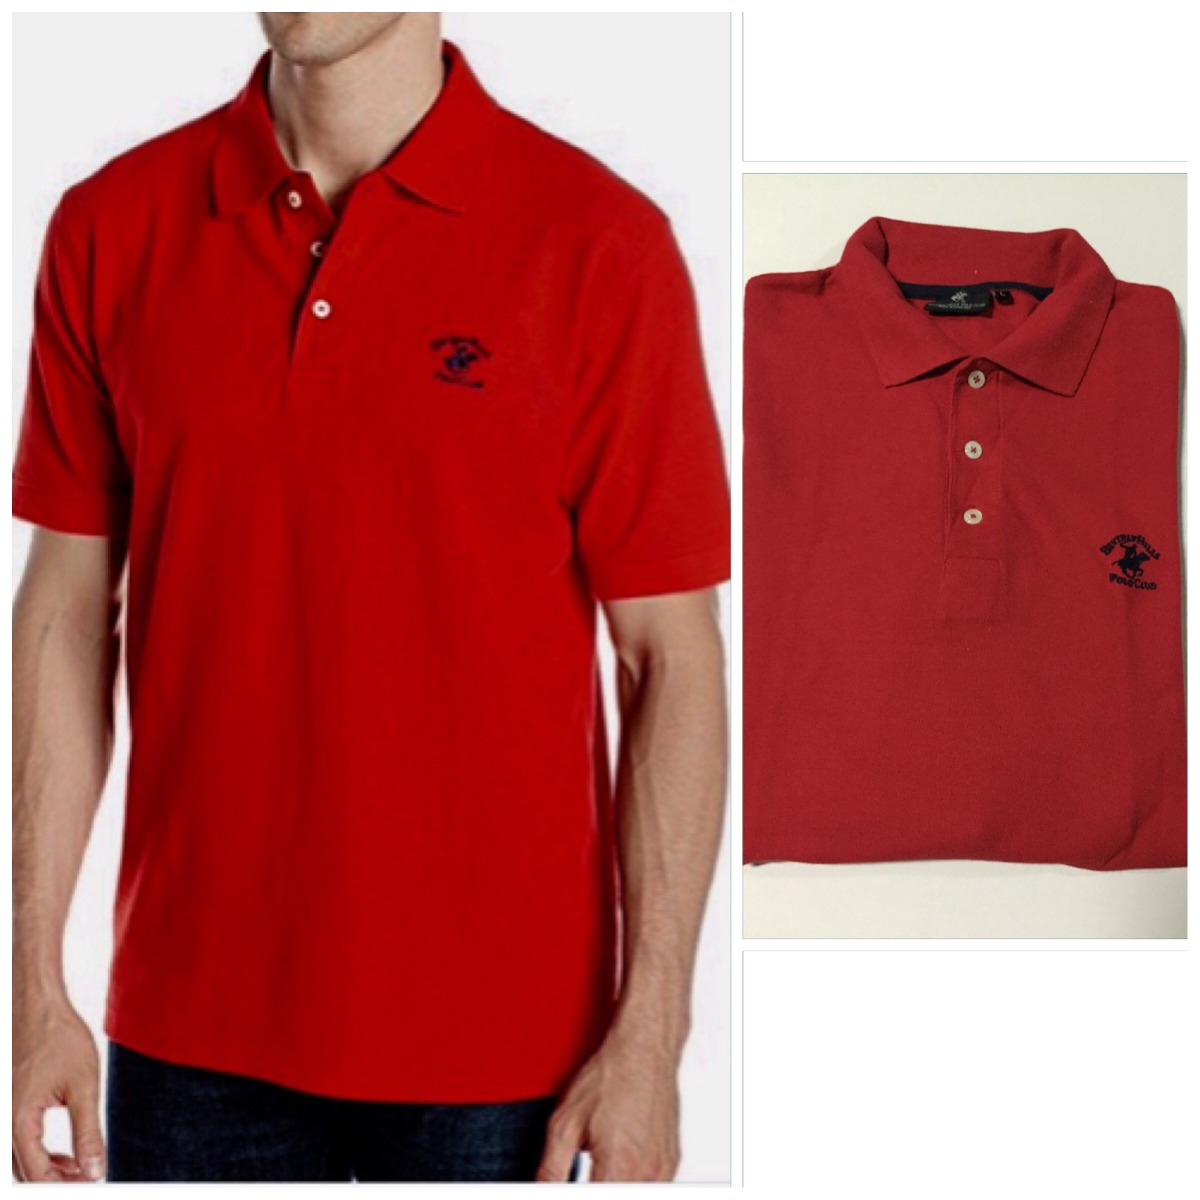 b2ab3941e3 Camisa Polo U.s.polo Assn   Beverly Hills Polo Club Original - R ...